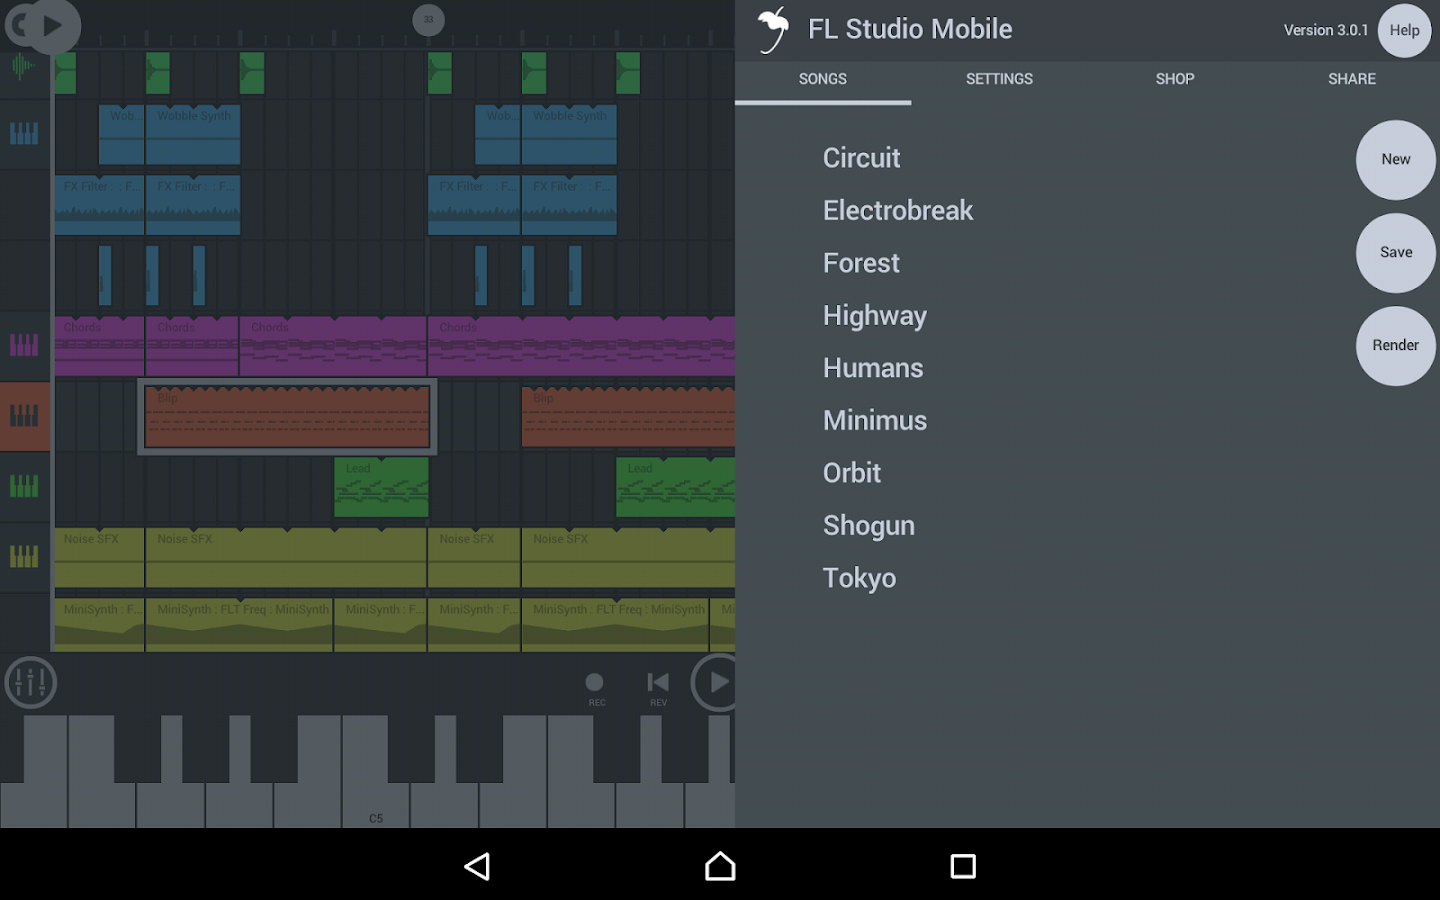 FL Studio Mobile Screenshot 16